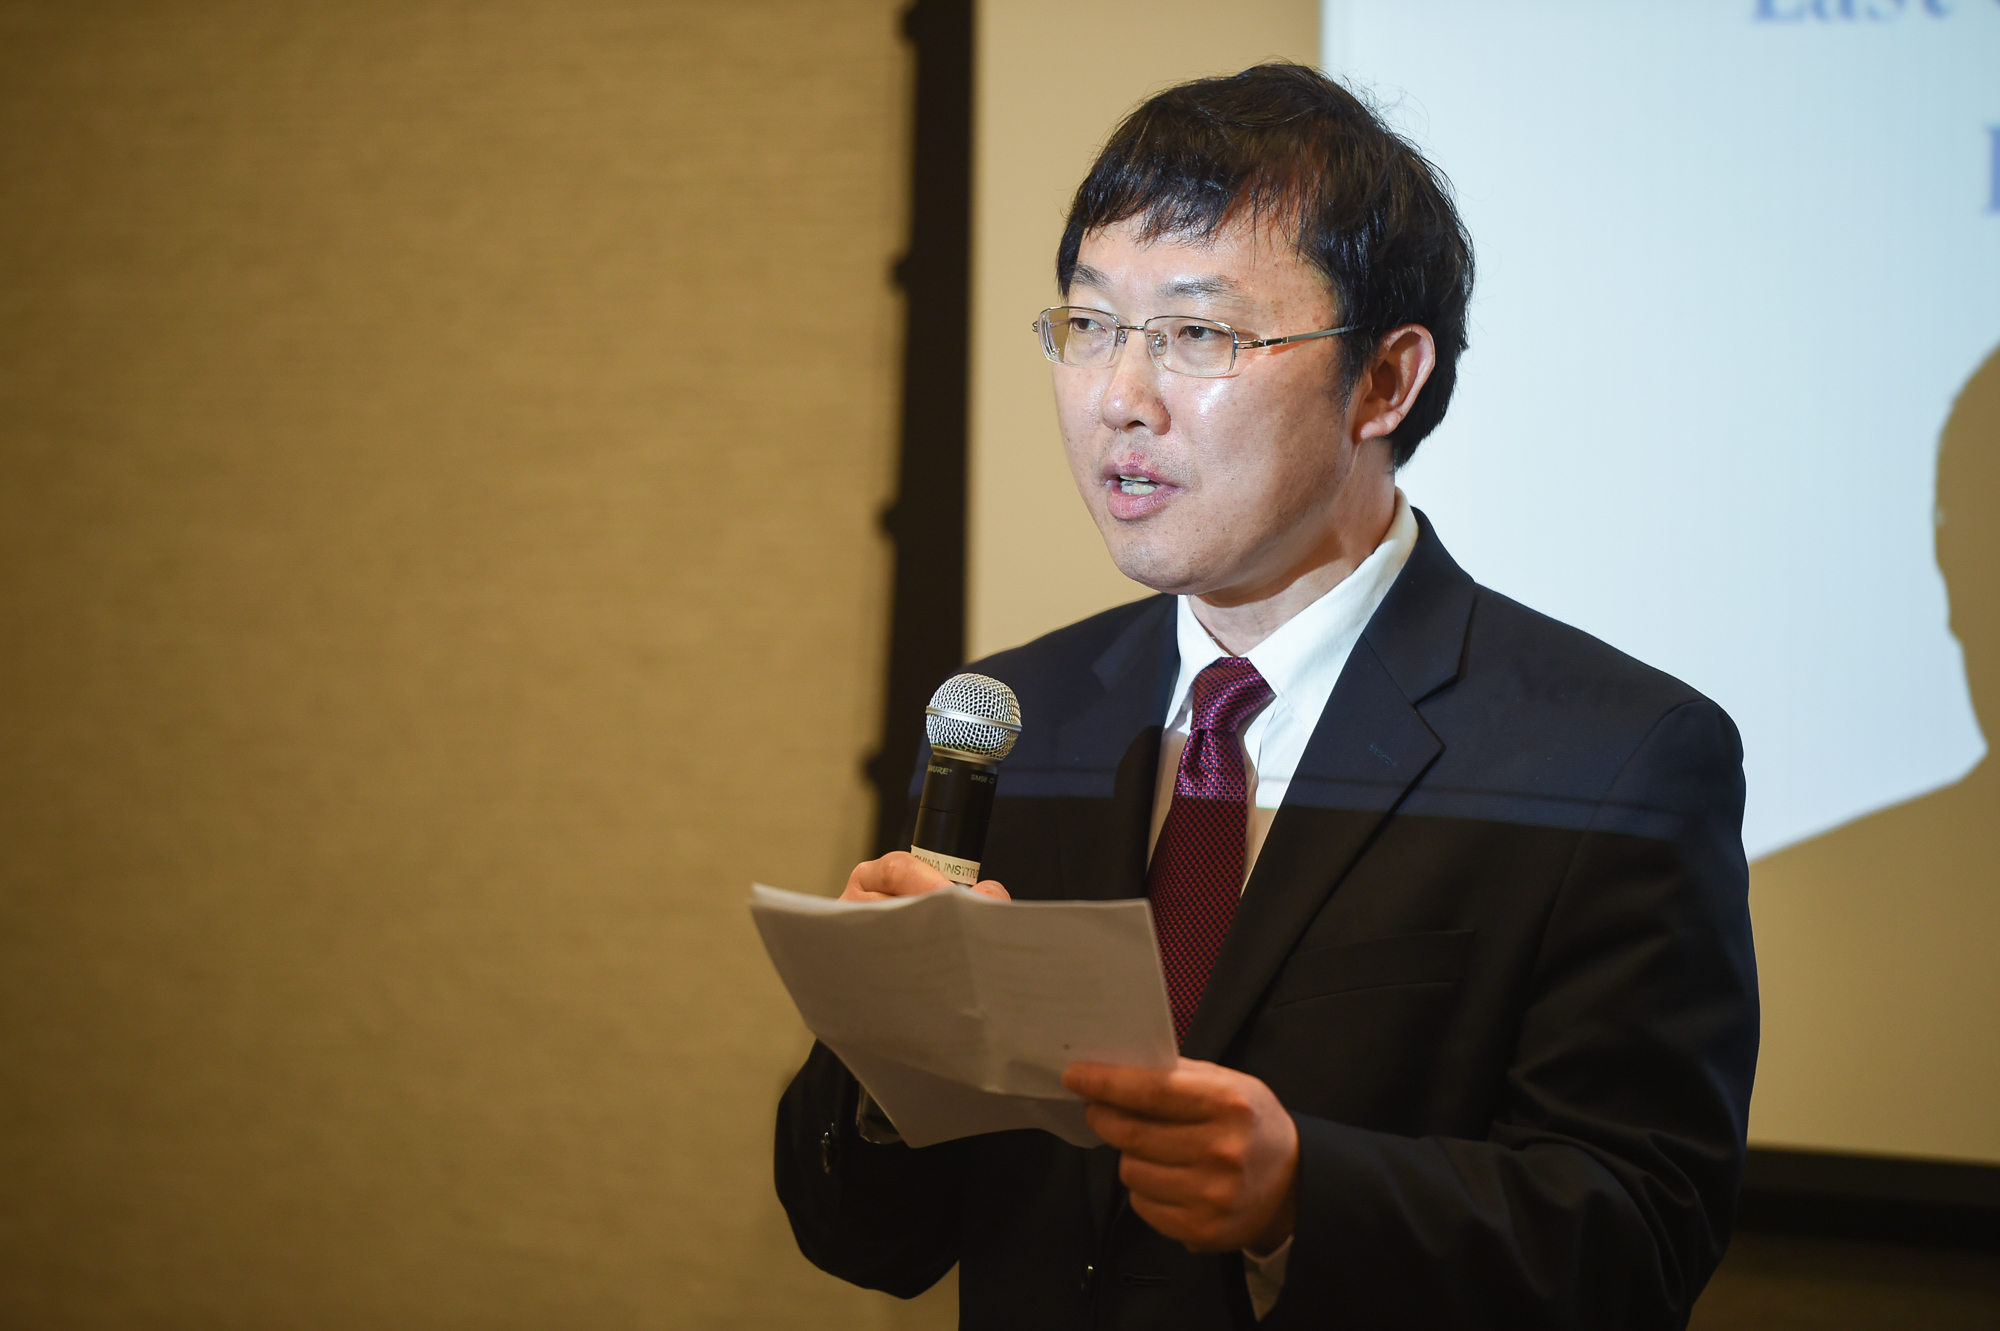 ECNU vice president Wang Rongming delivers the opening speech.